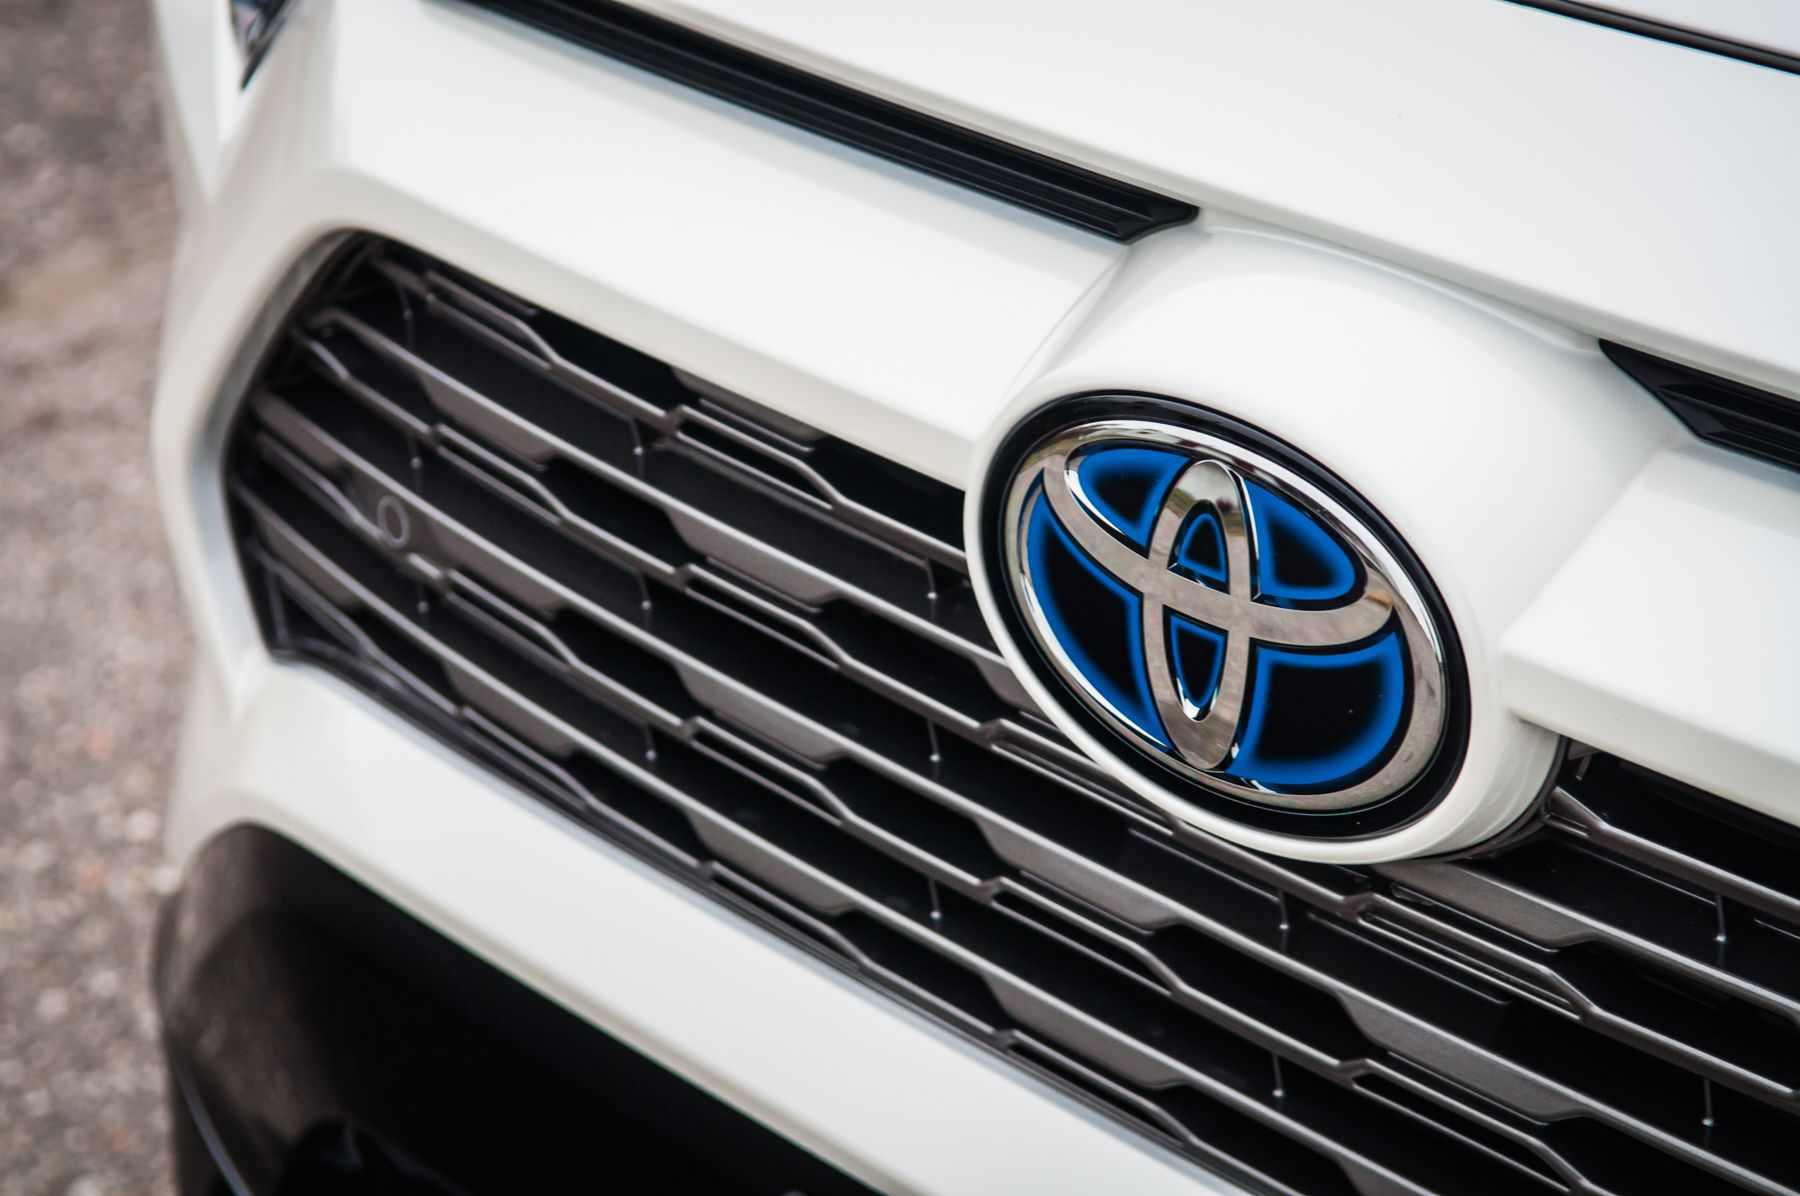 Toyota named top automotive brand in Interbrand's 2020 Best Global Brands Report